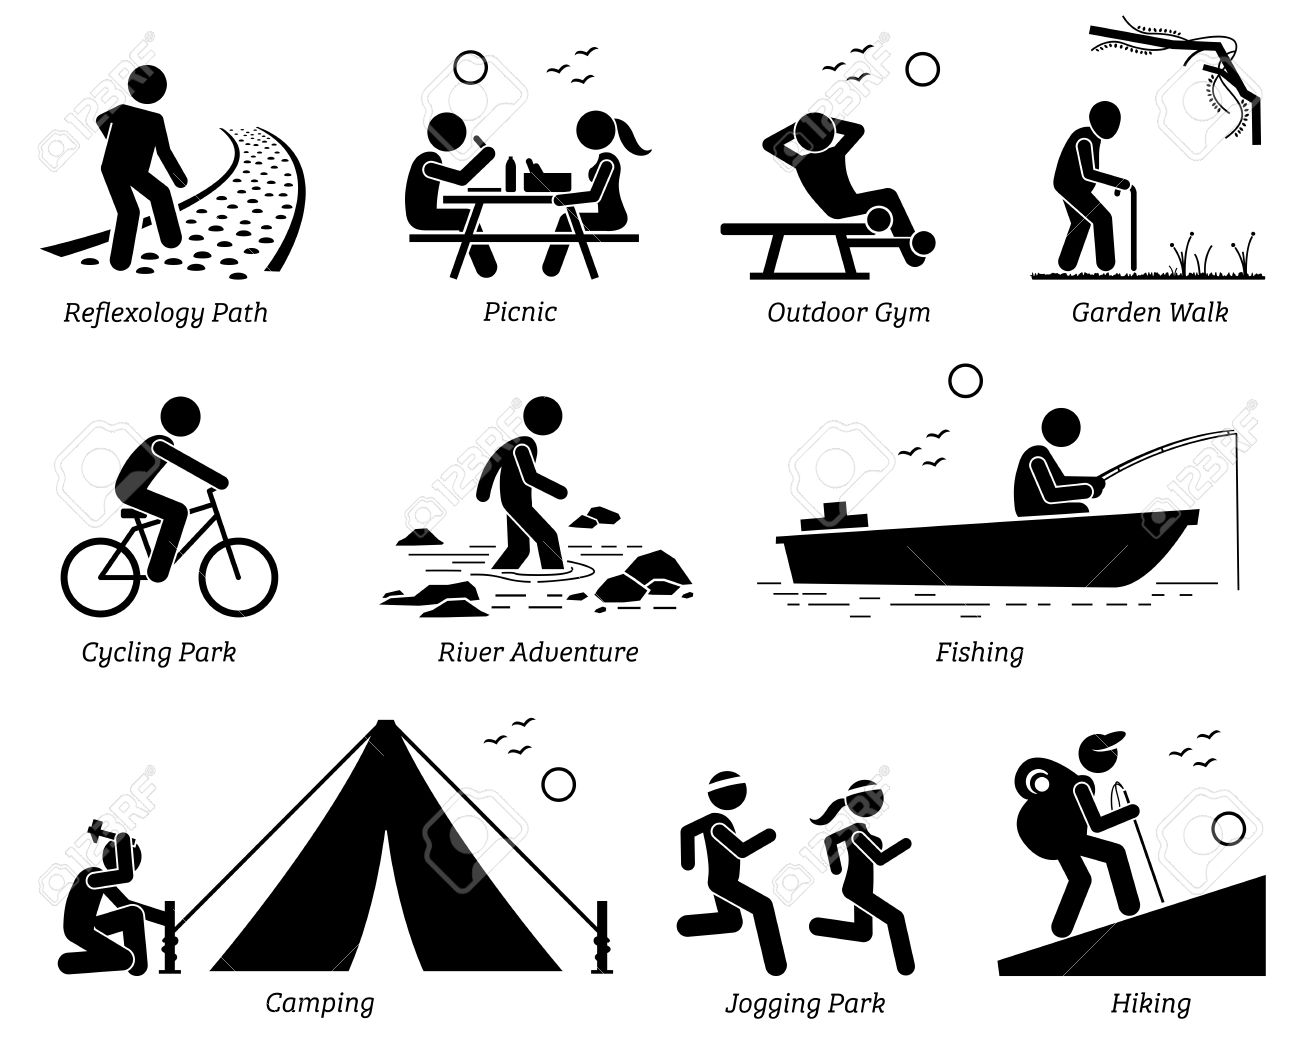 Outdoor Recreation Recreational Lifestyle and Activities. Pictogram depicts reflexology path, picnic, outdoor gym, garden walk, cycling park, river adventure, fishing, camping, jogging, and hiking. - 81763700